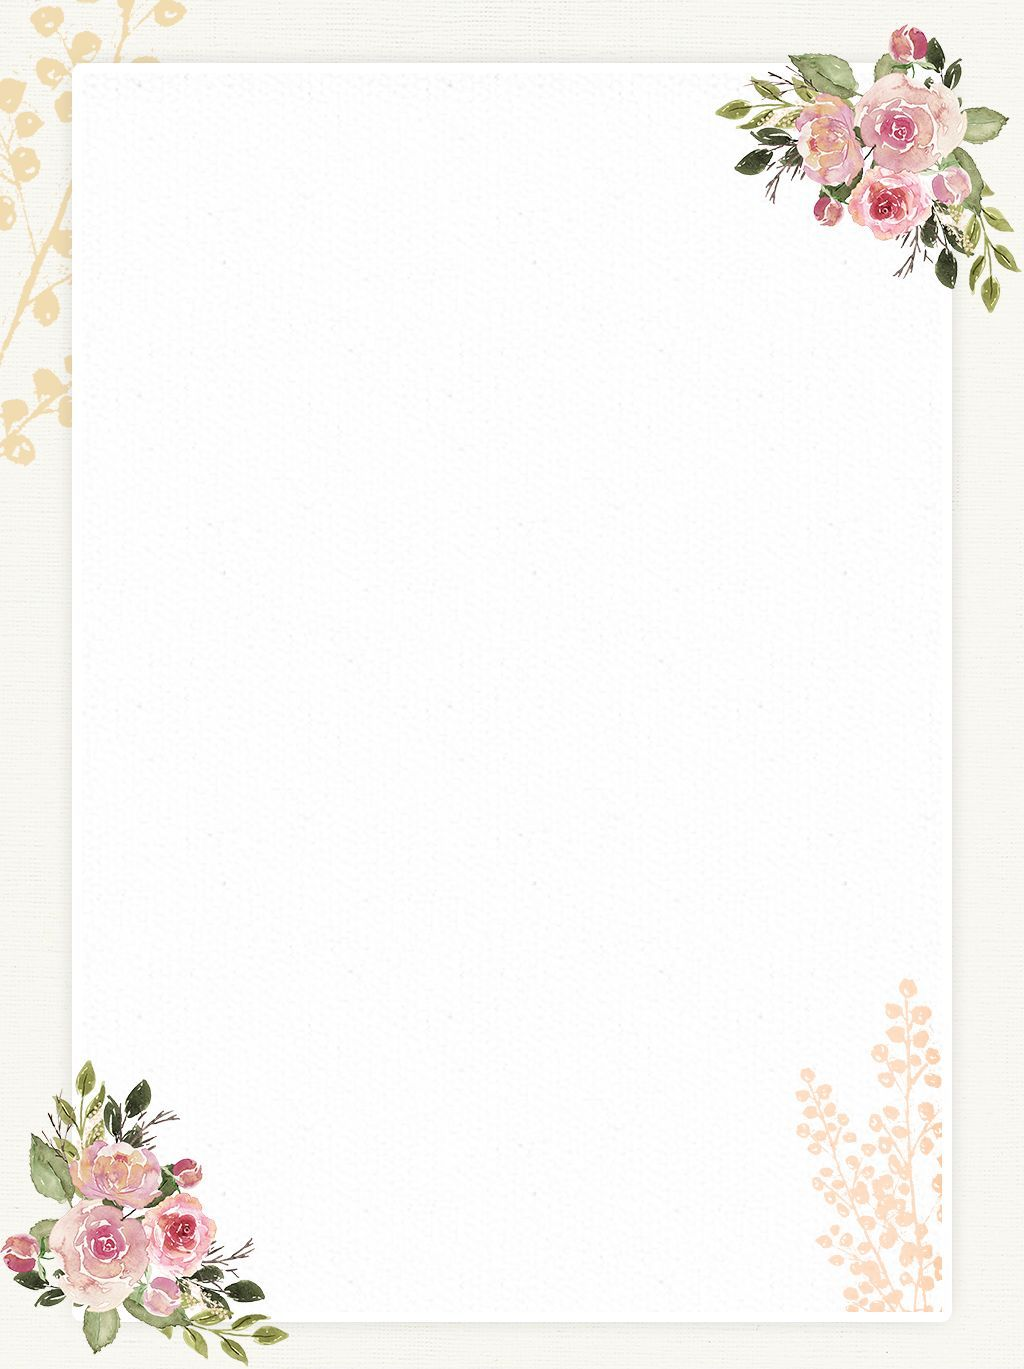 Hand Drawn Vintage Flowers Romantic Paper Background Source File Molduras Para Convites De Casamento Como Desenhar Maos Fundo Do Casamento